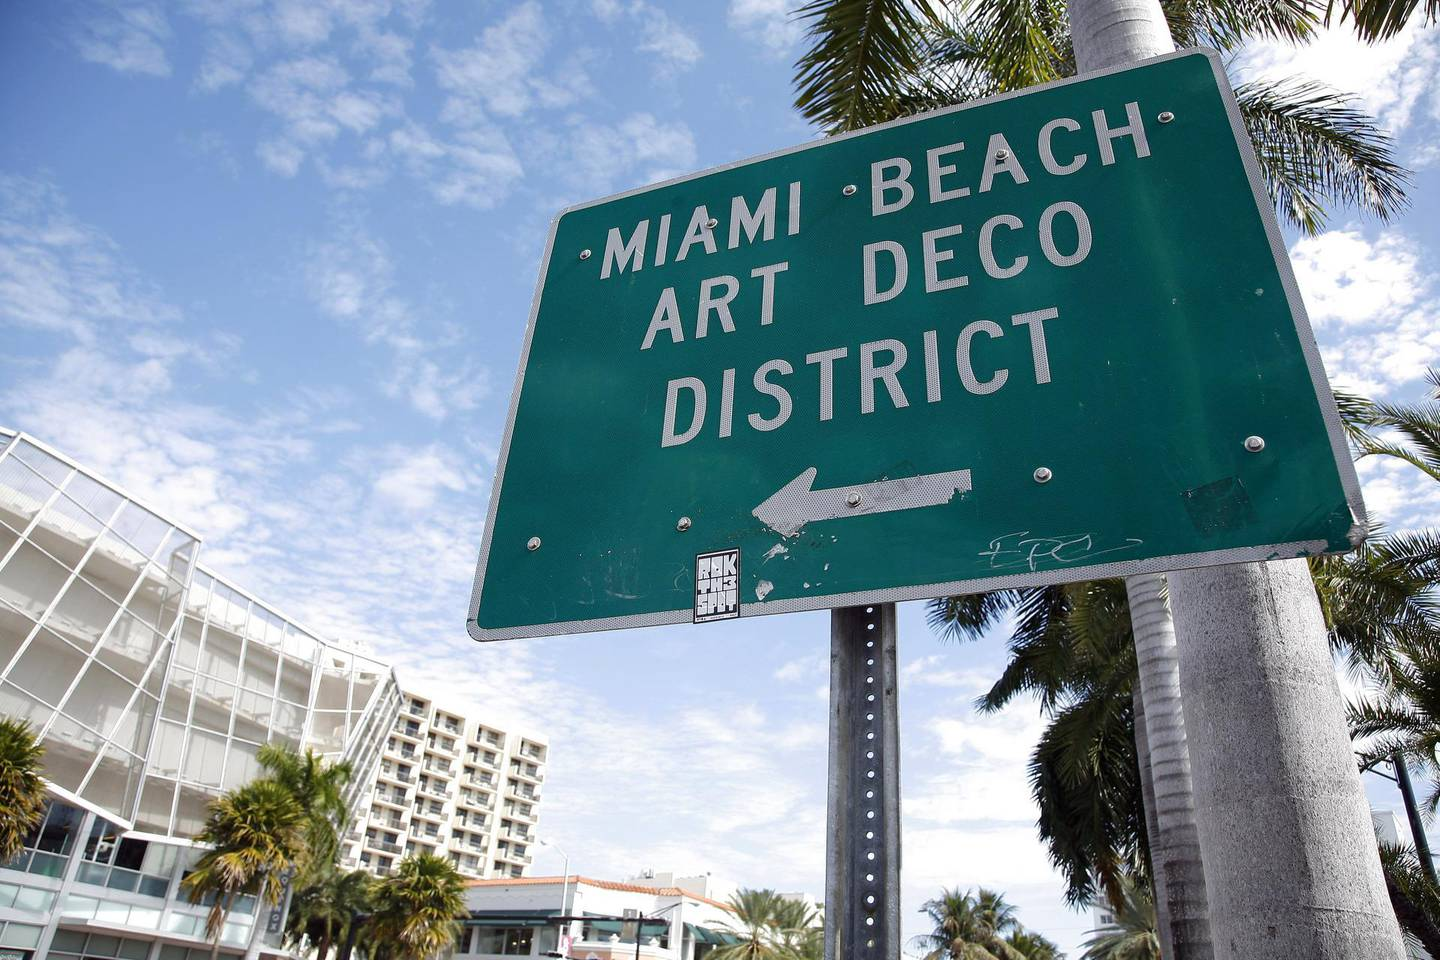 Miami (Florida, United States) 2011: South Beach District with its Art Deco hotels and building sign, notice, placard. (Photo by: Andia/UIG via Getty Images)